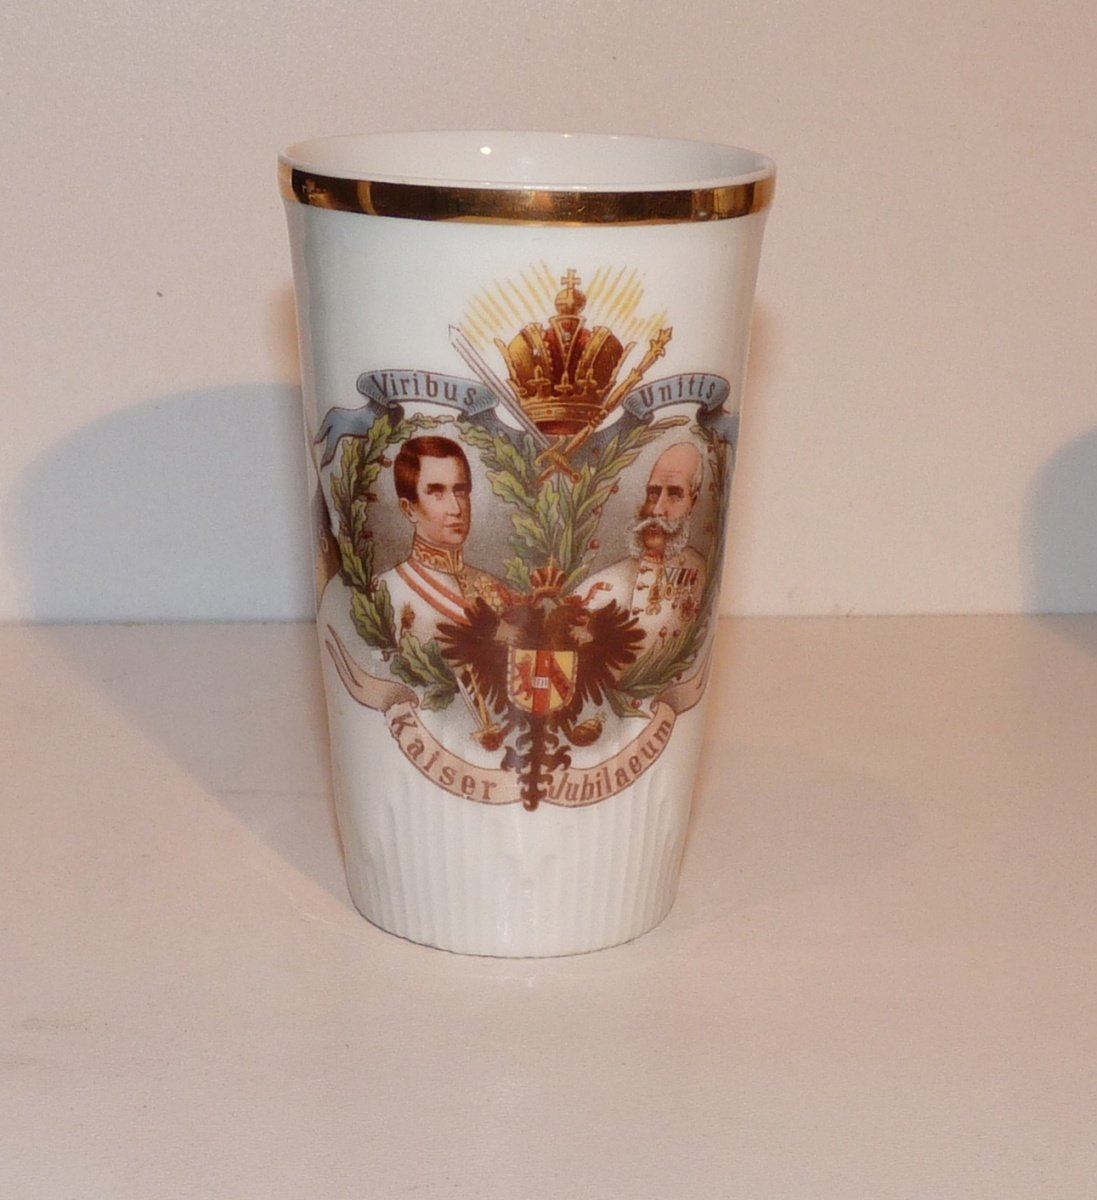 Narrow tall tumbler with Franz Joseph , to government jubilee